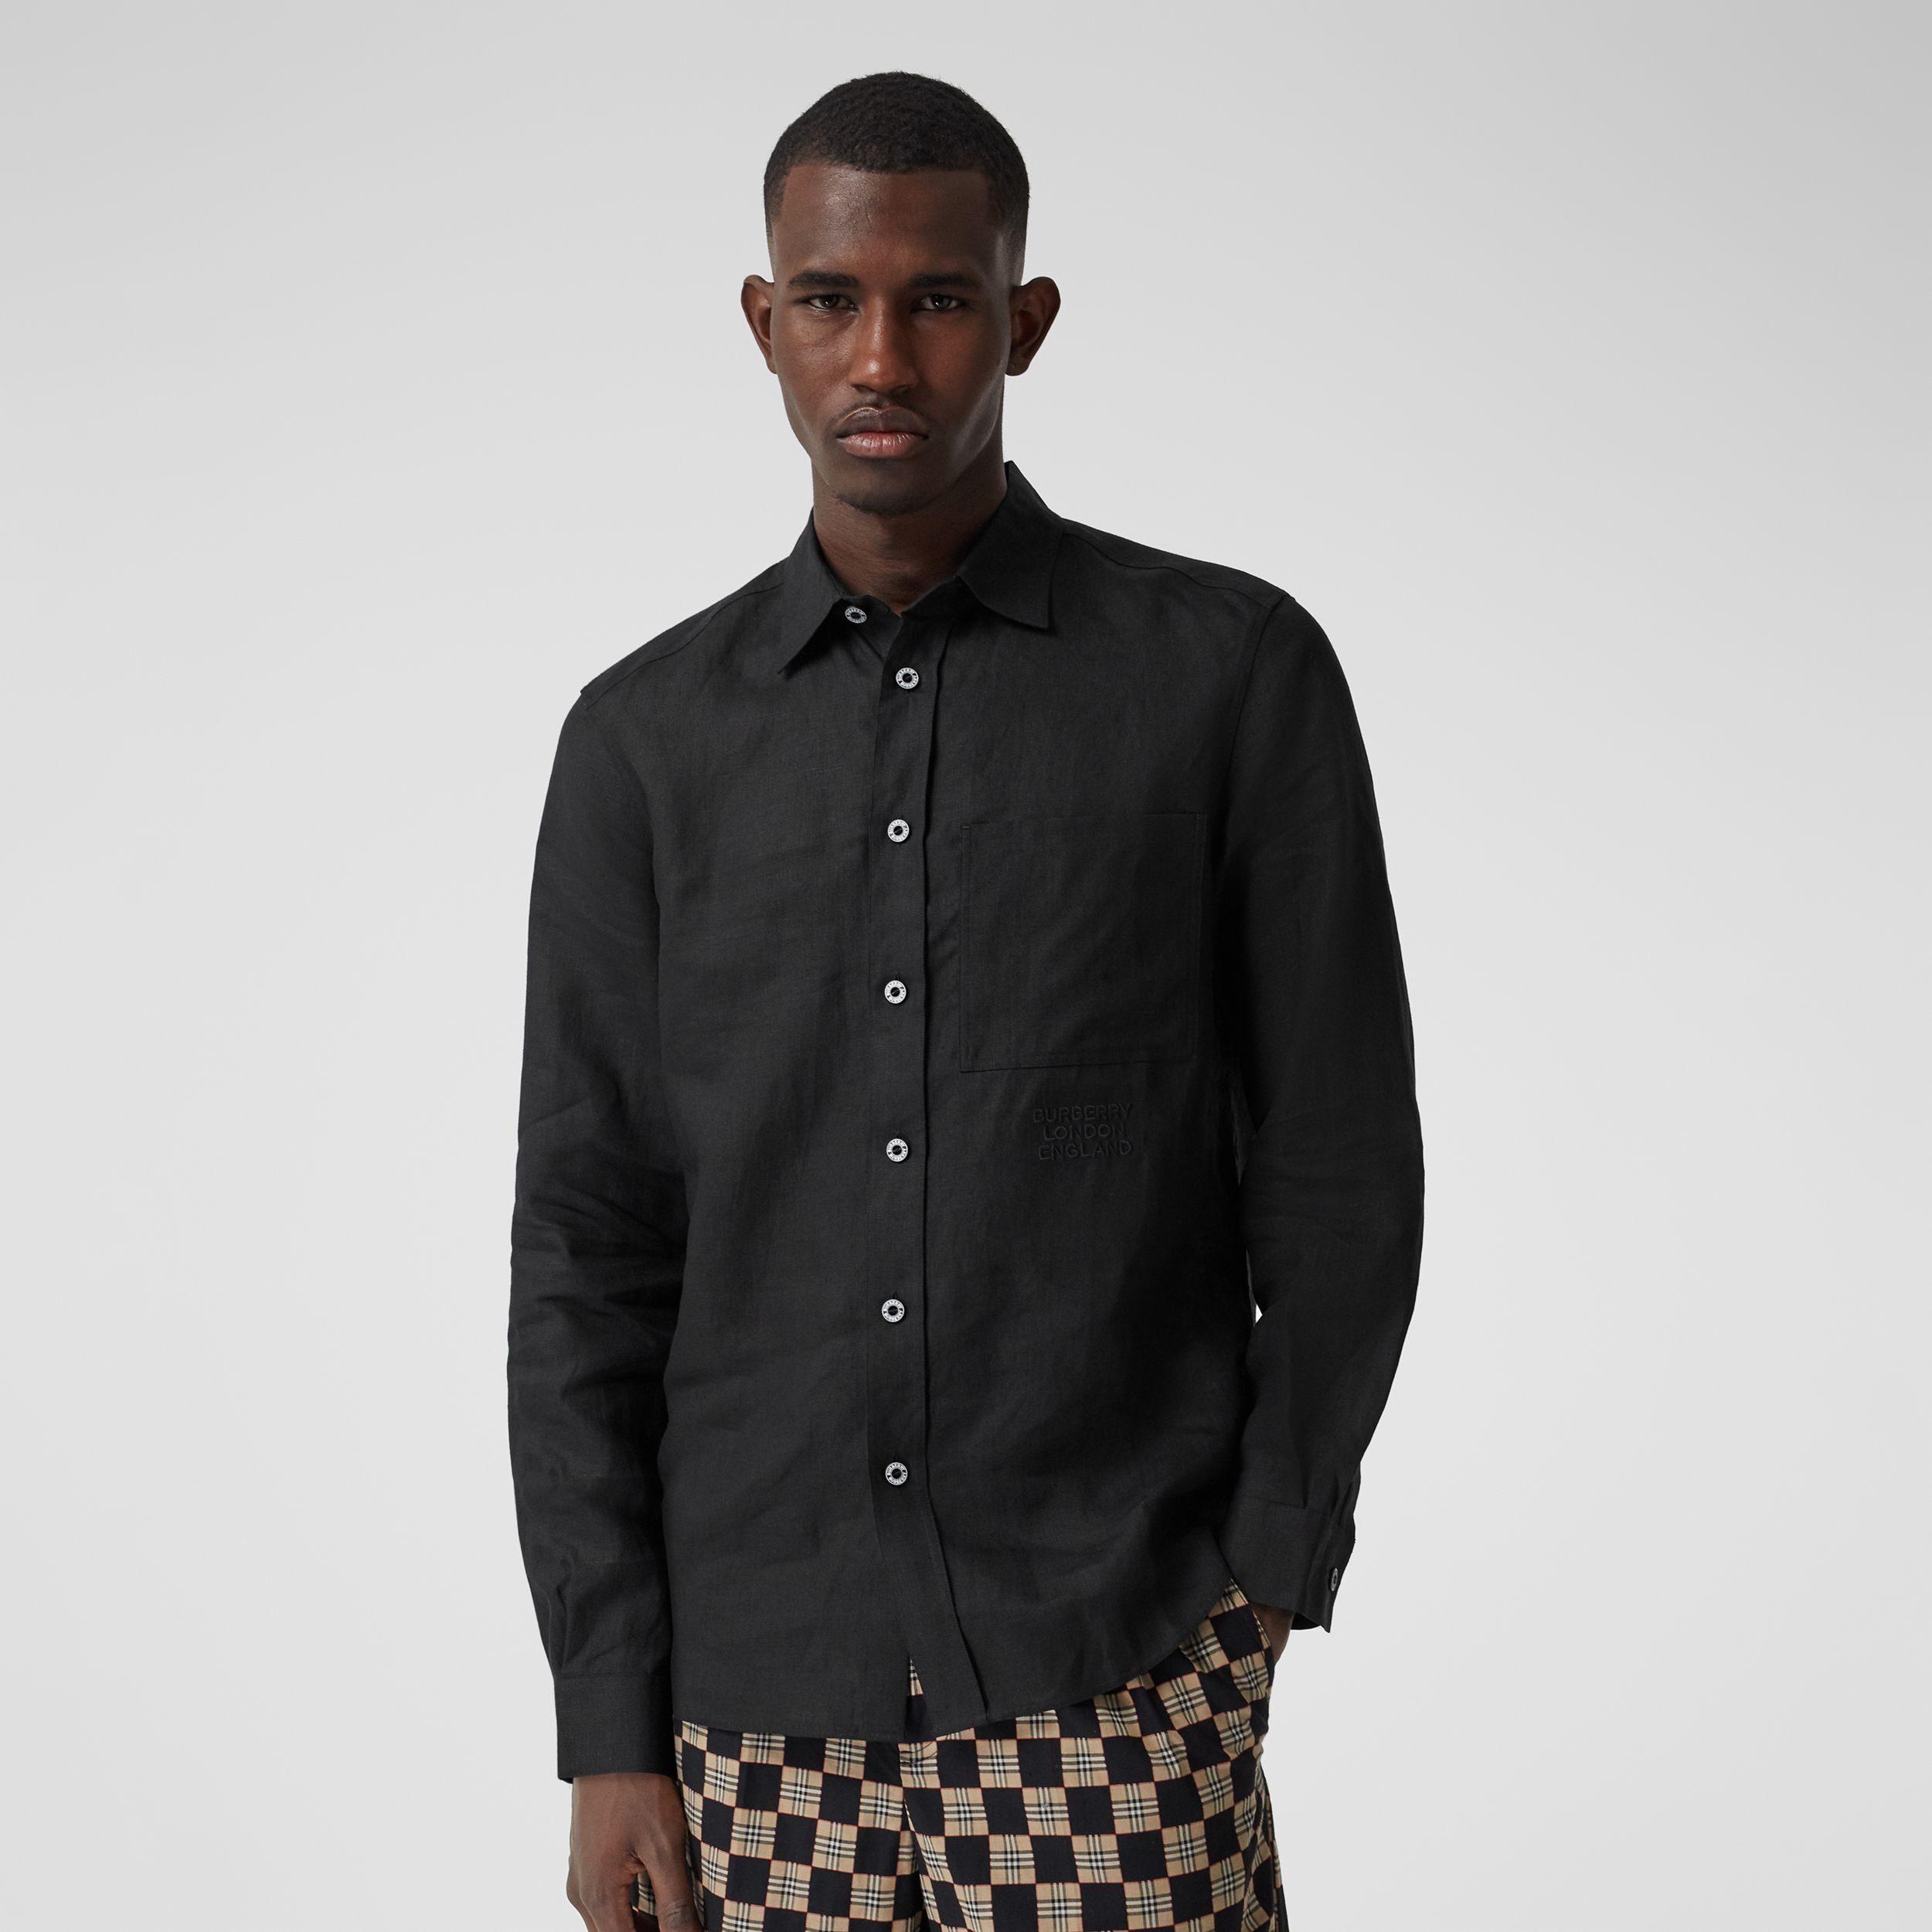 Embroidered Logo Linen Shirt in Black - Men | Burberry Hong Kong S.A.R. - 1